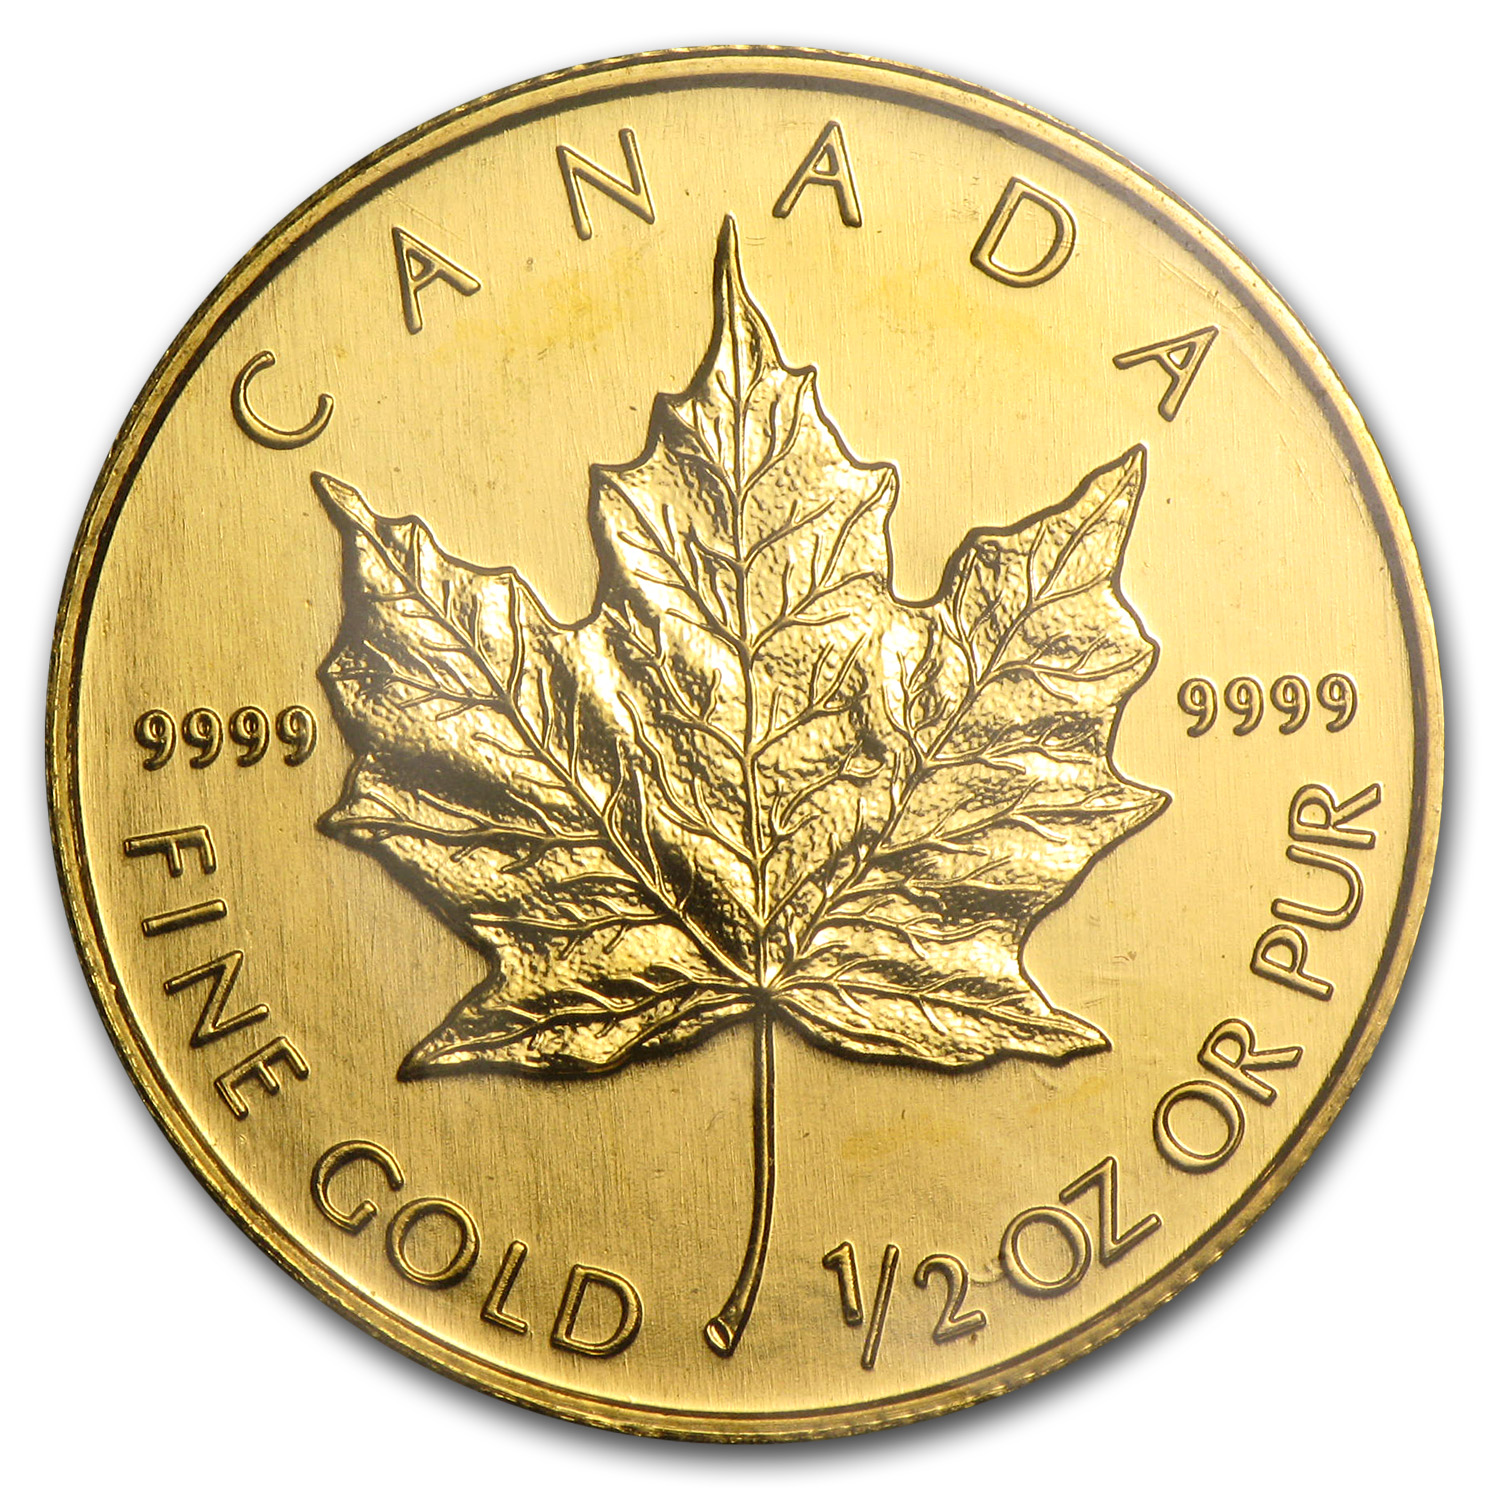 2003 1/2 oz Gold Canadian Maple Leaf